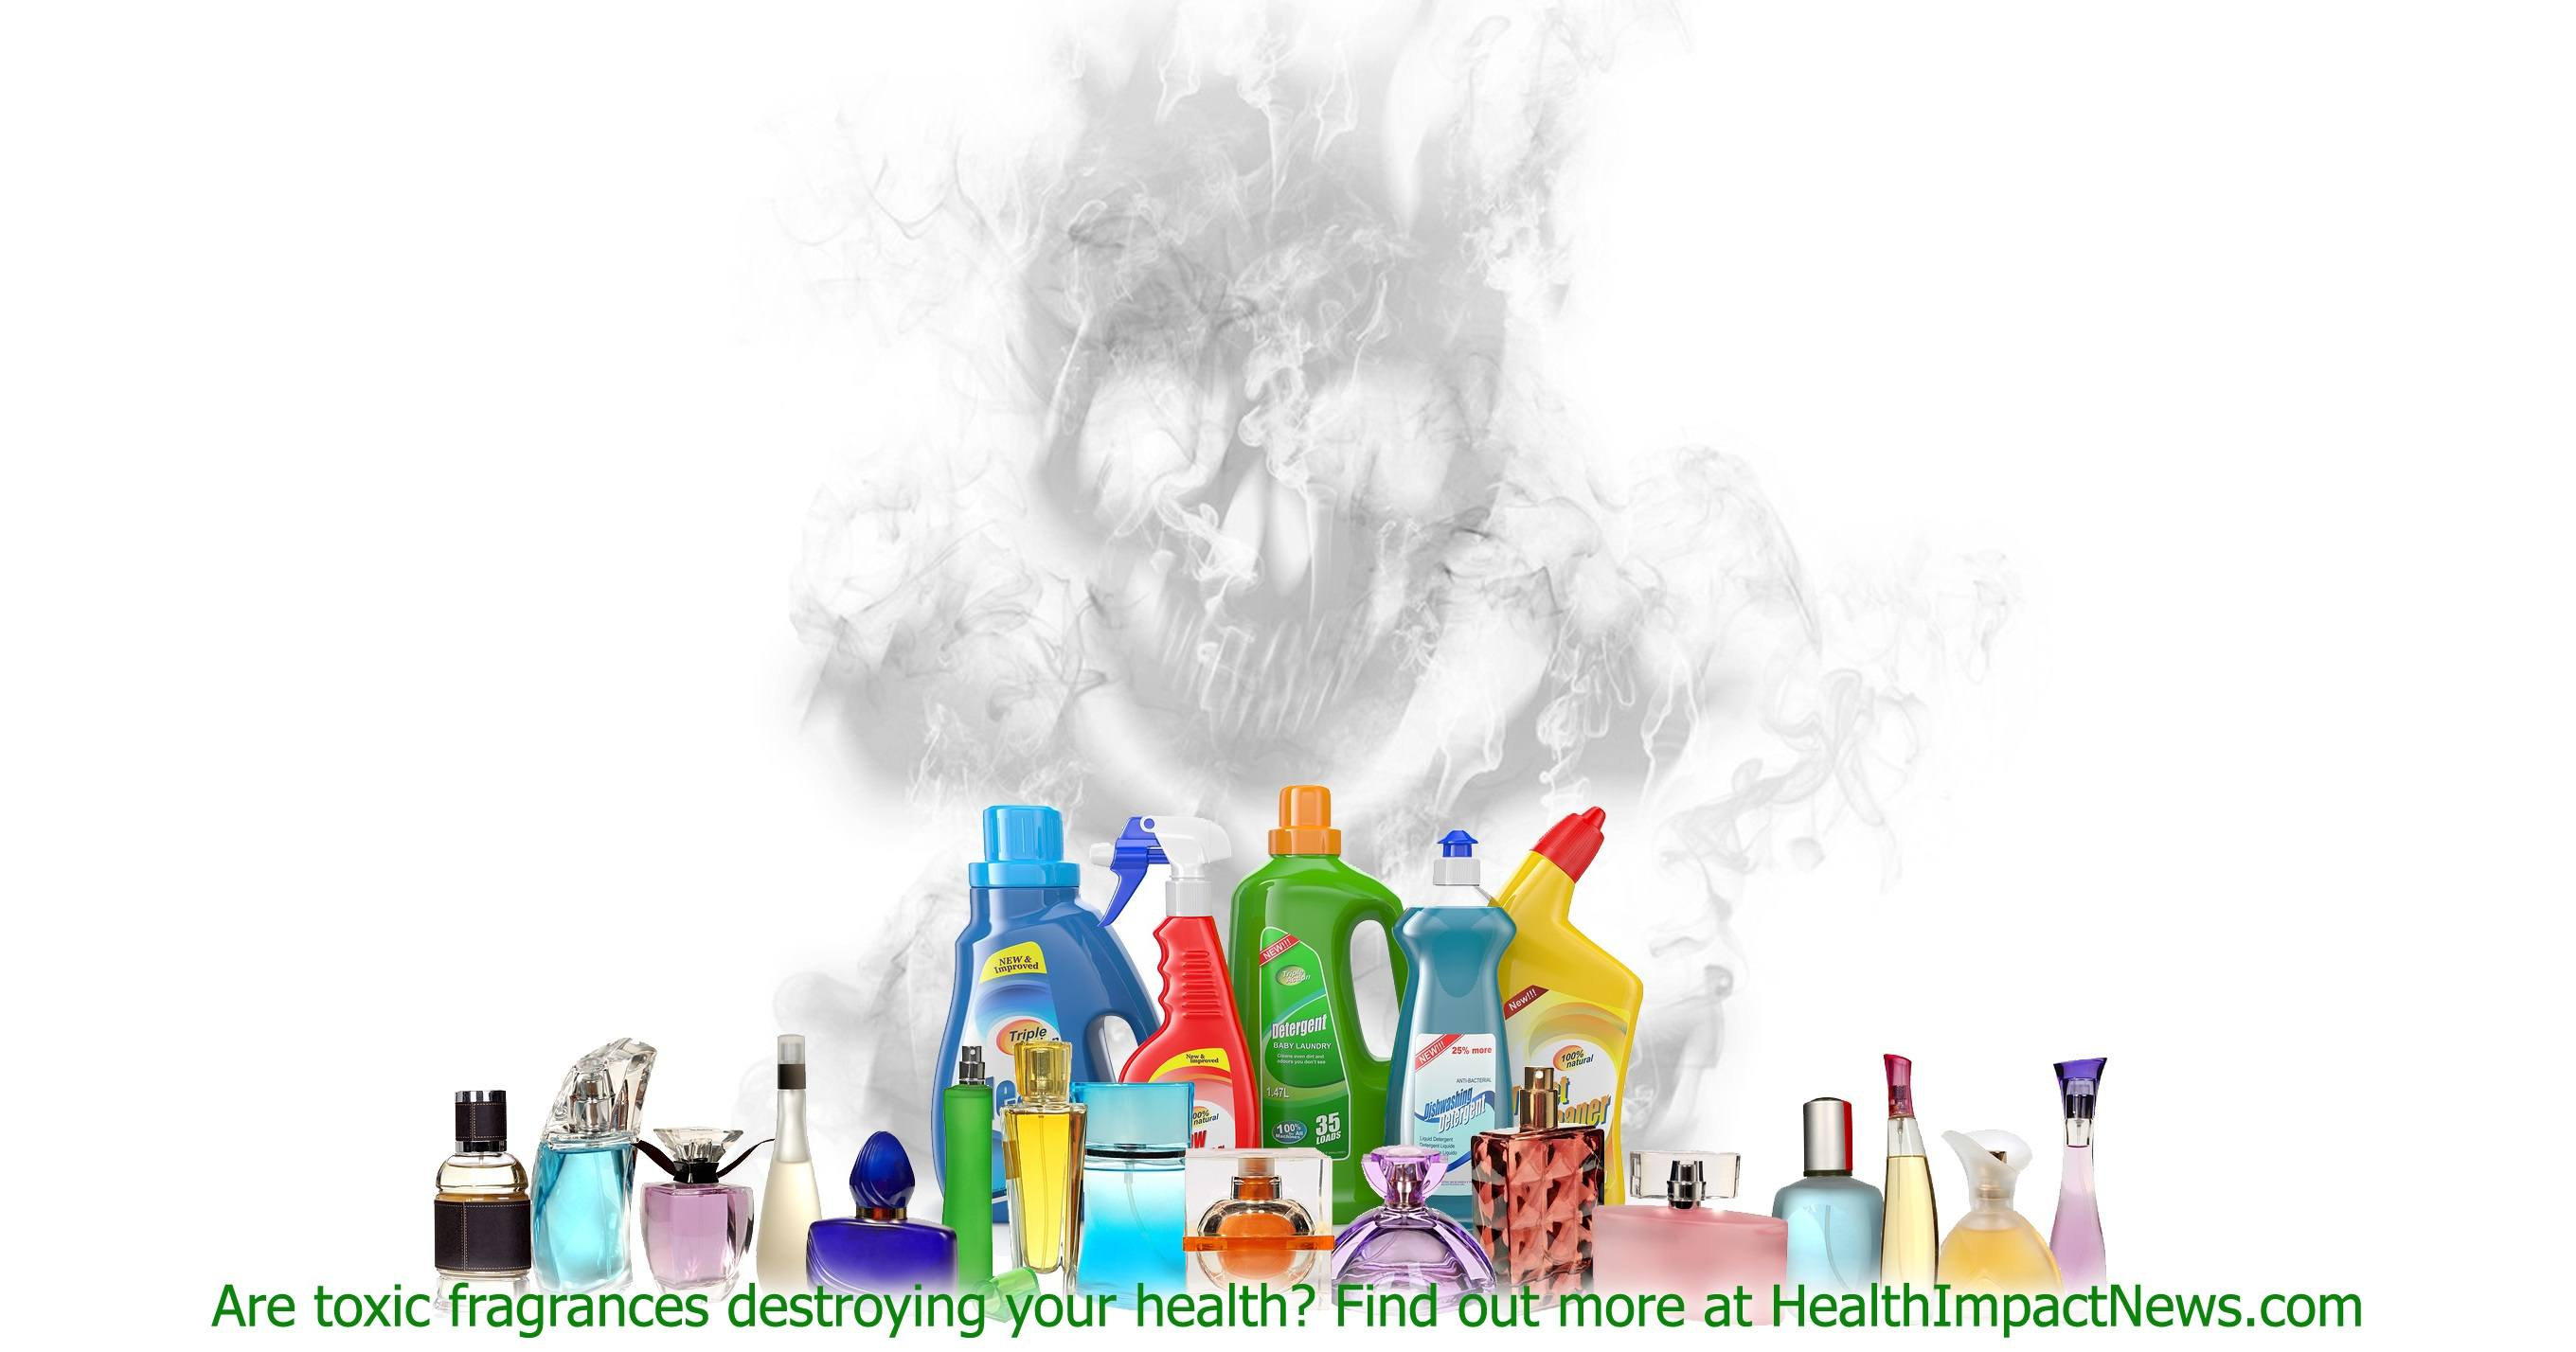 are-toxic-fragrances-destroying-your-health